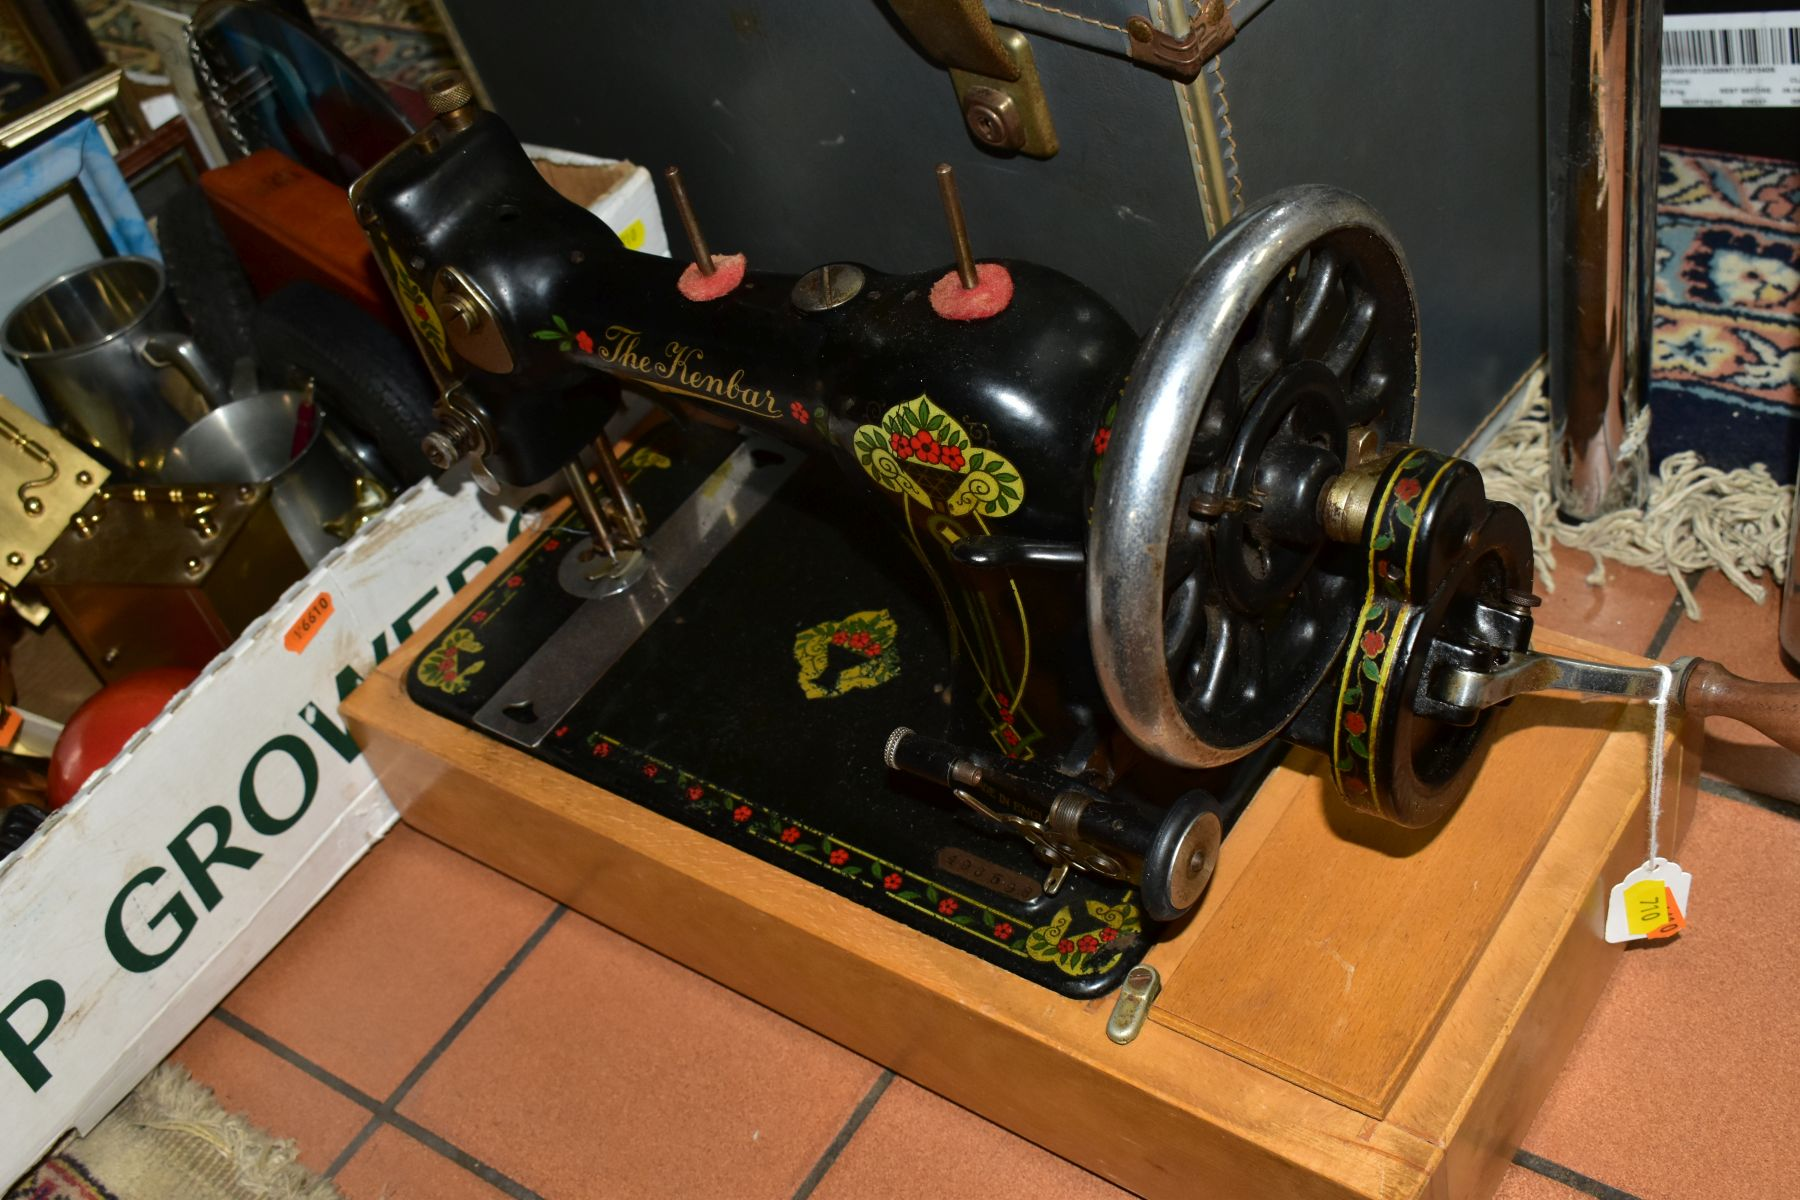 A KENBAR CAST IRON SEWING MACHINE, black painted with floral decoration on wooden base, with a boxed - Image 6 of 10